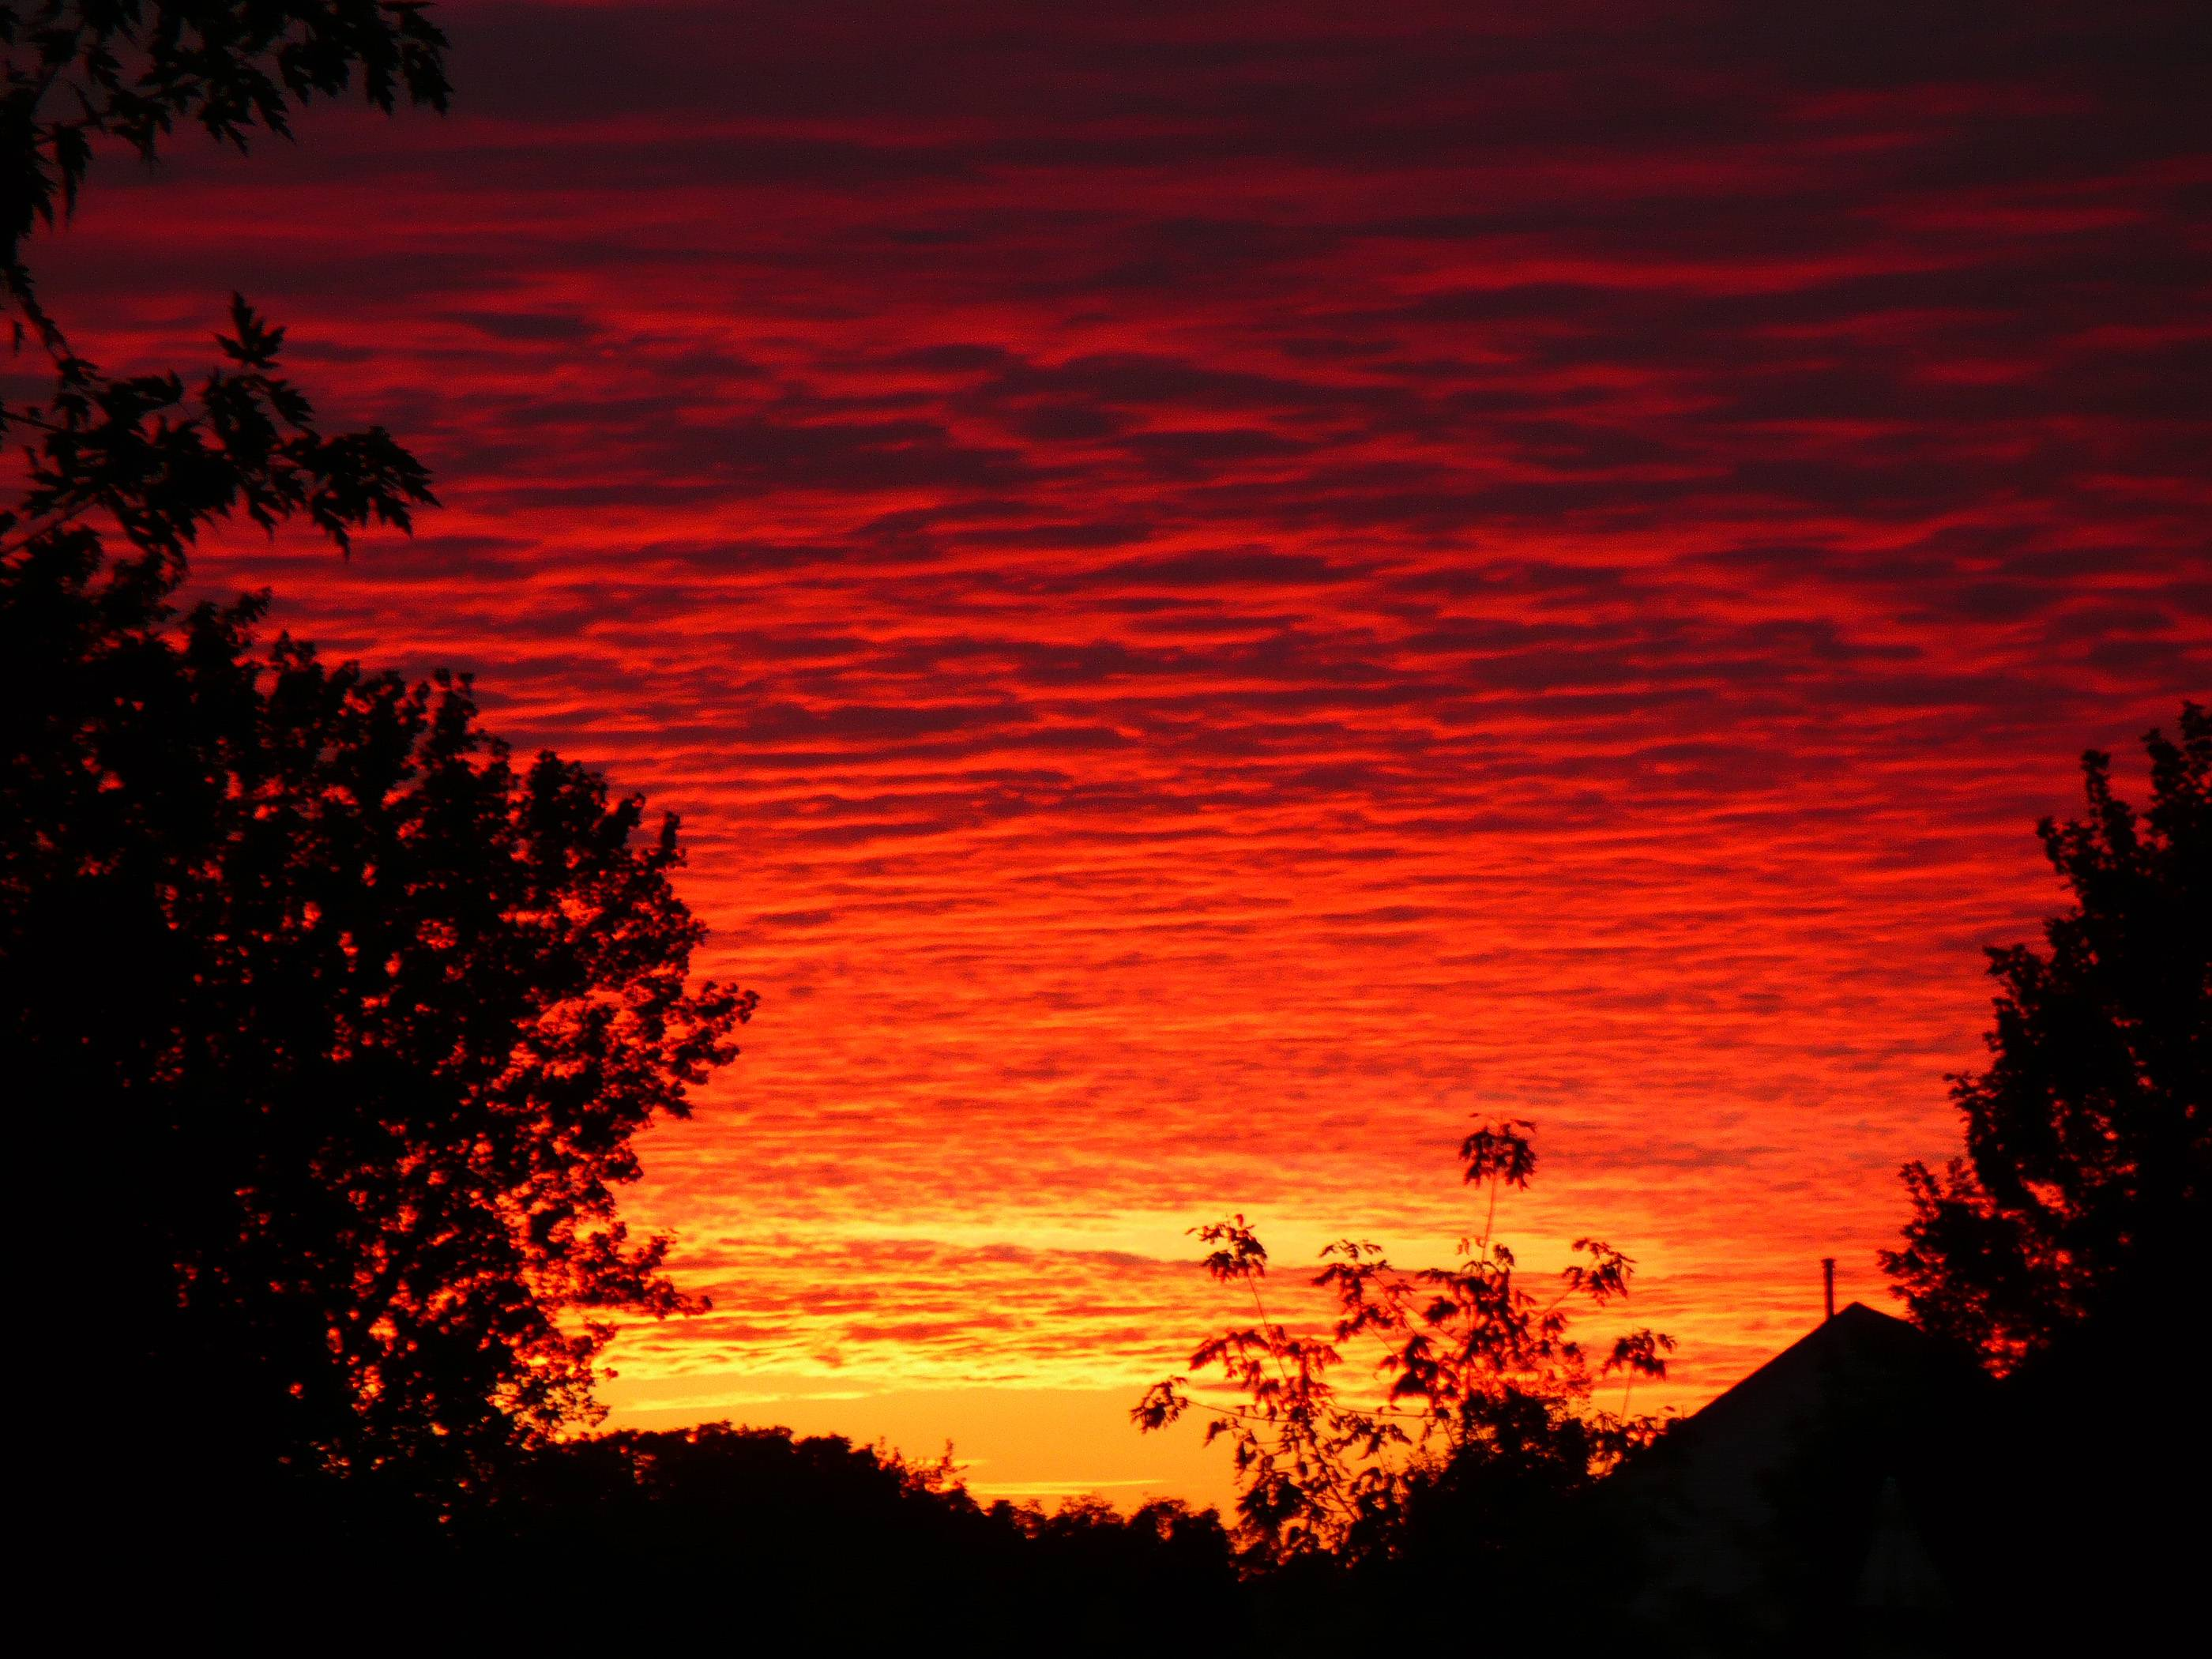 This is one of the most dramatic burning sky sunsets I have ever seen from my own back yard.